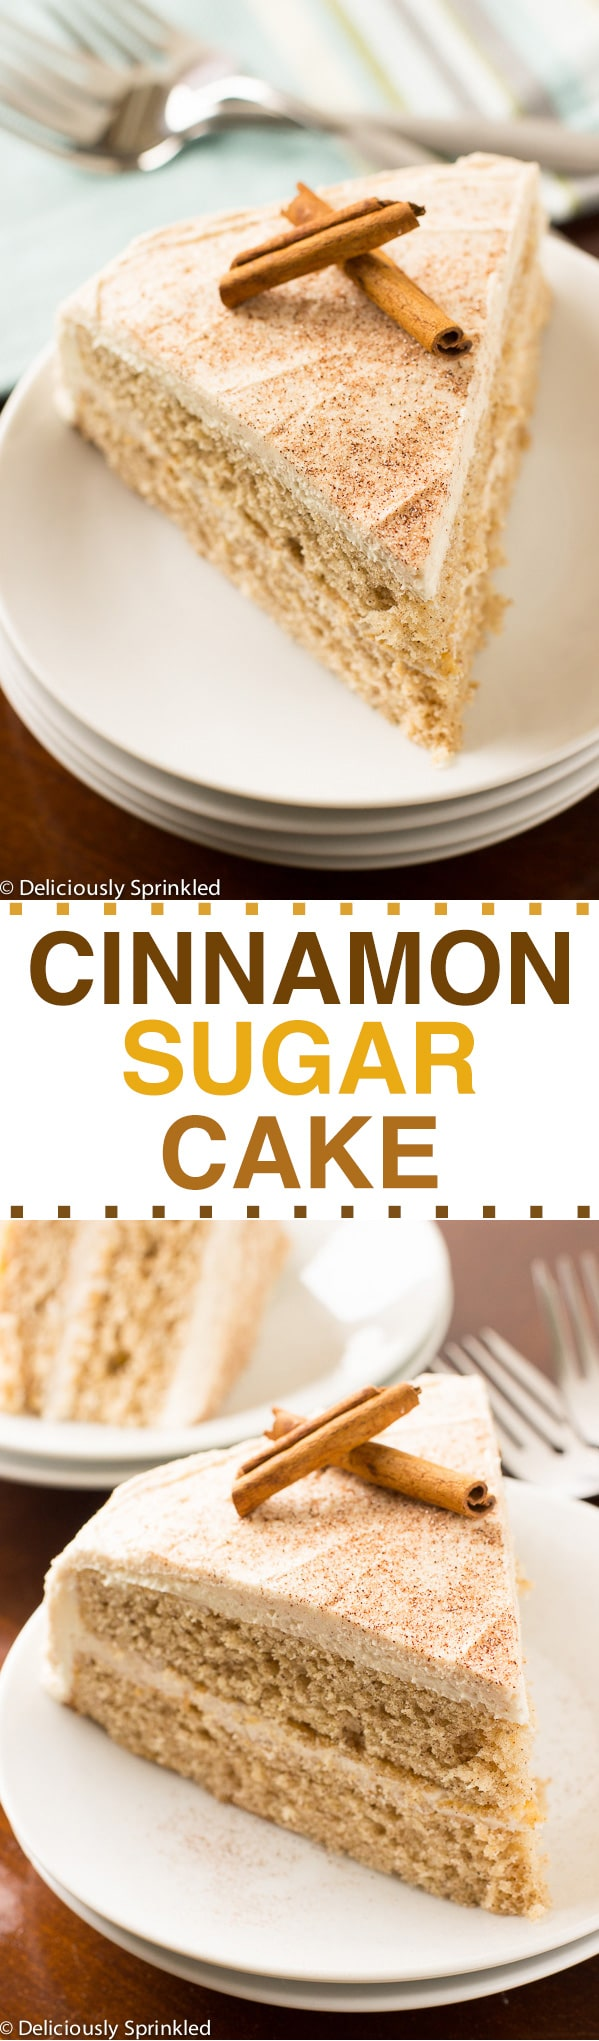 Cinnamon Sugar Cake Recipe